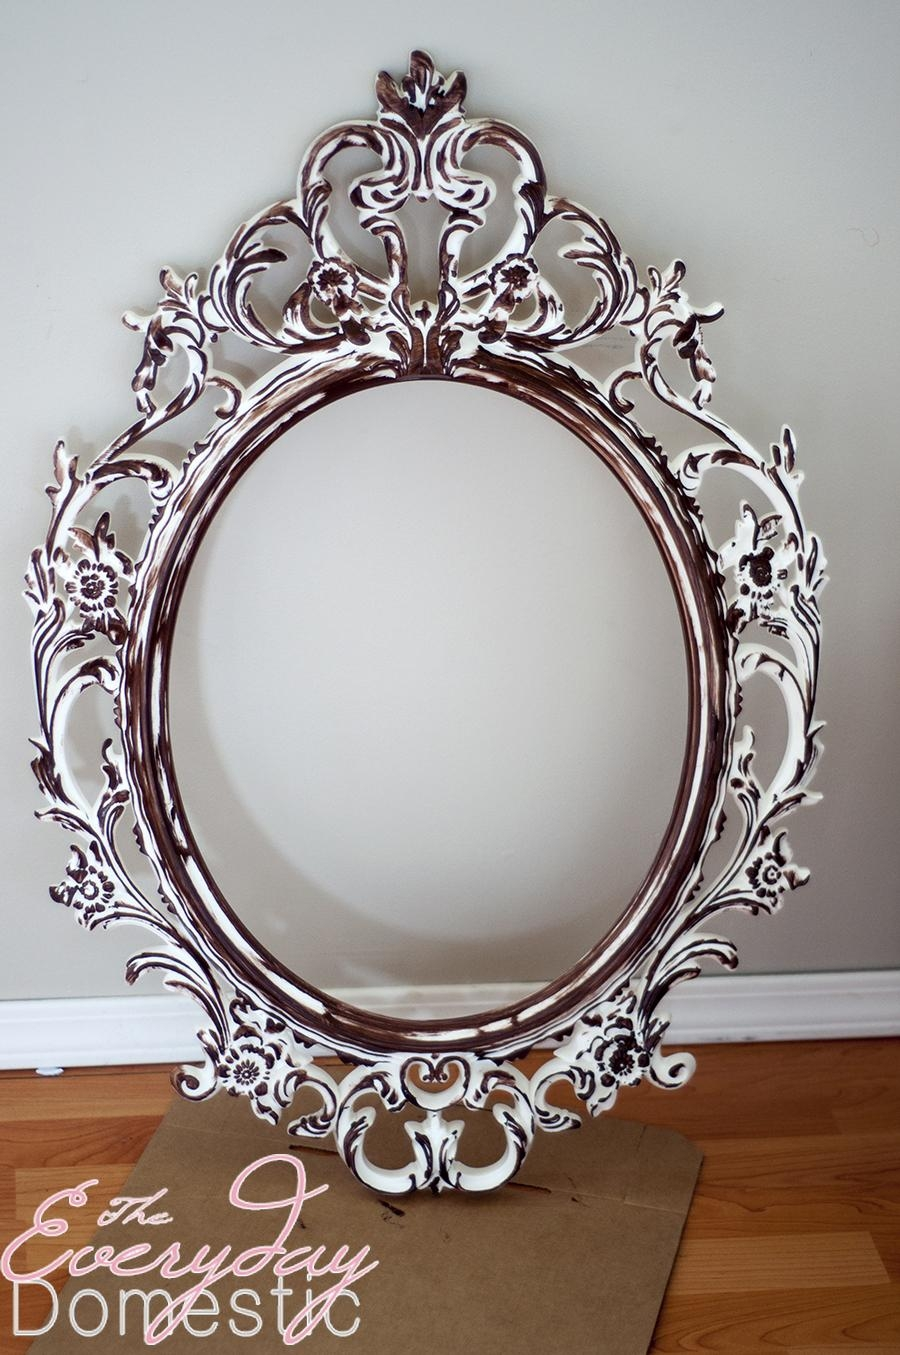 Accessories: Good Looking Accessories For Home Bedroom And Within Vintage Looking Mirror (View 15 of 15)